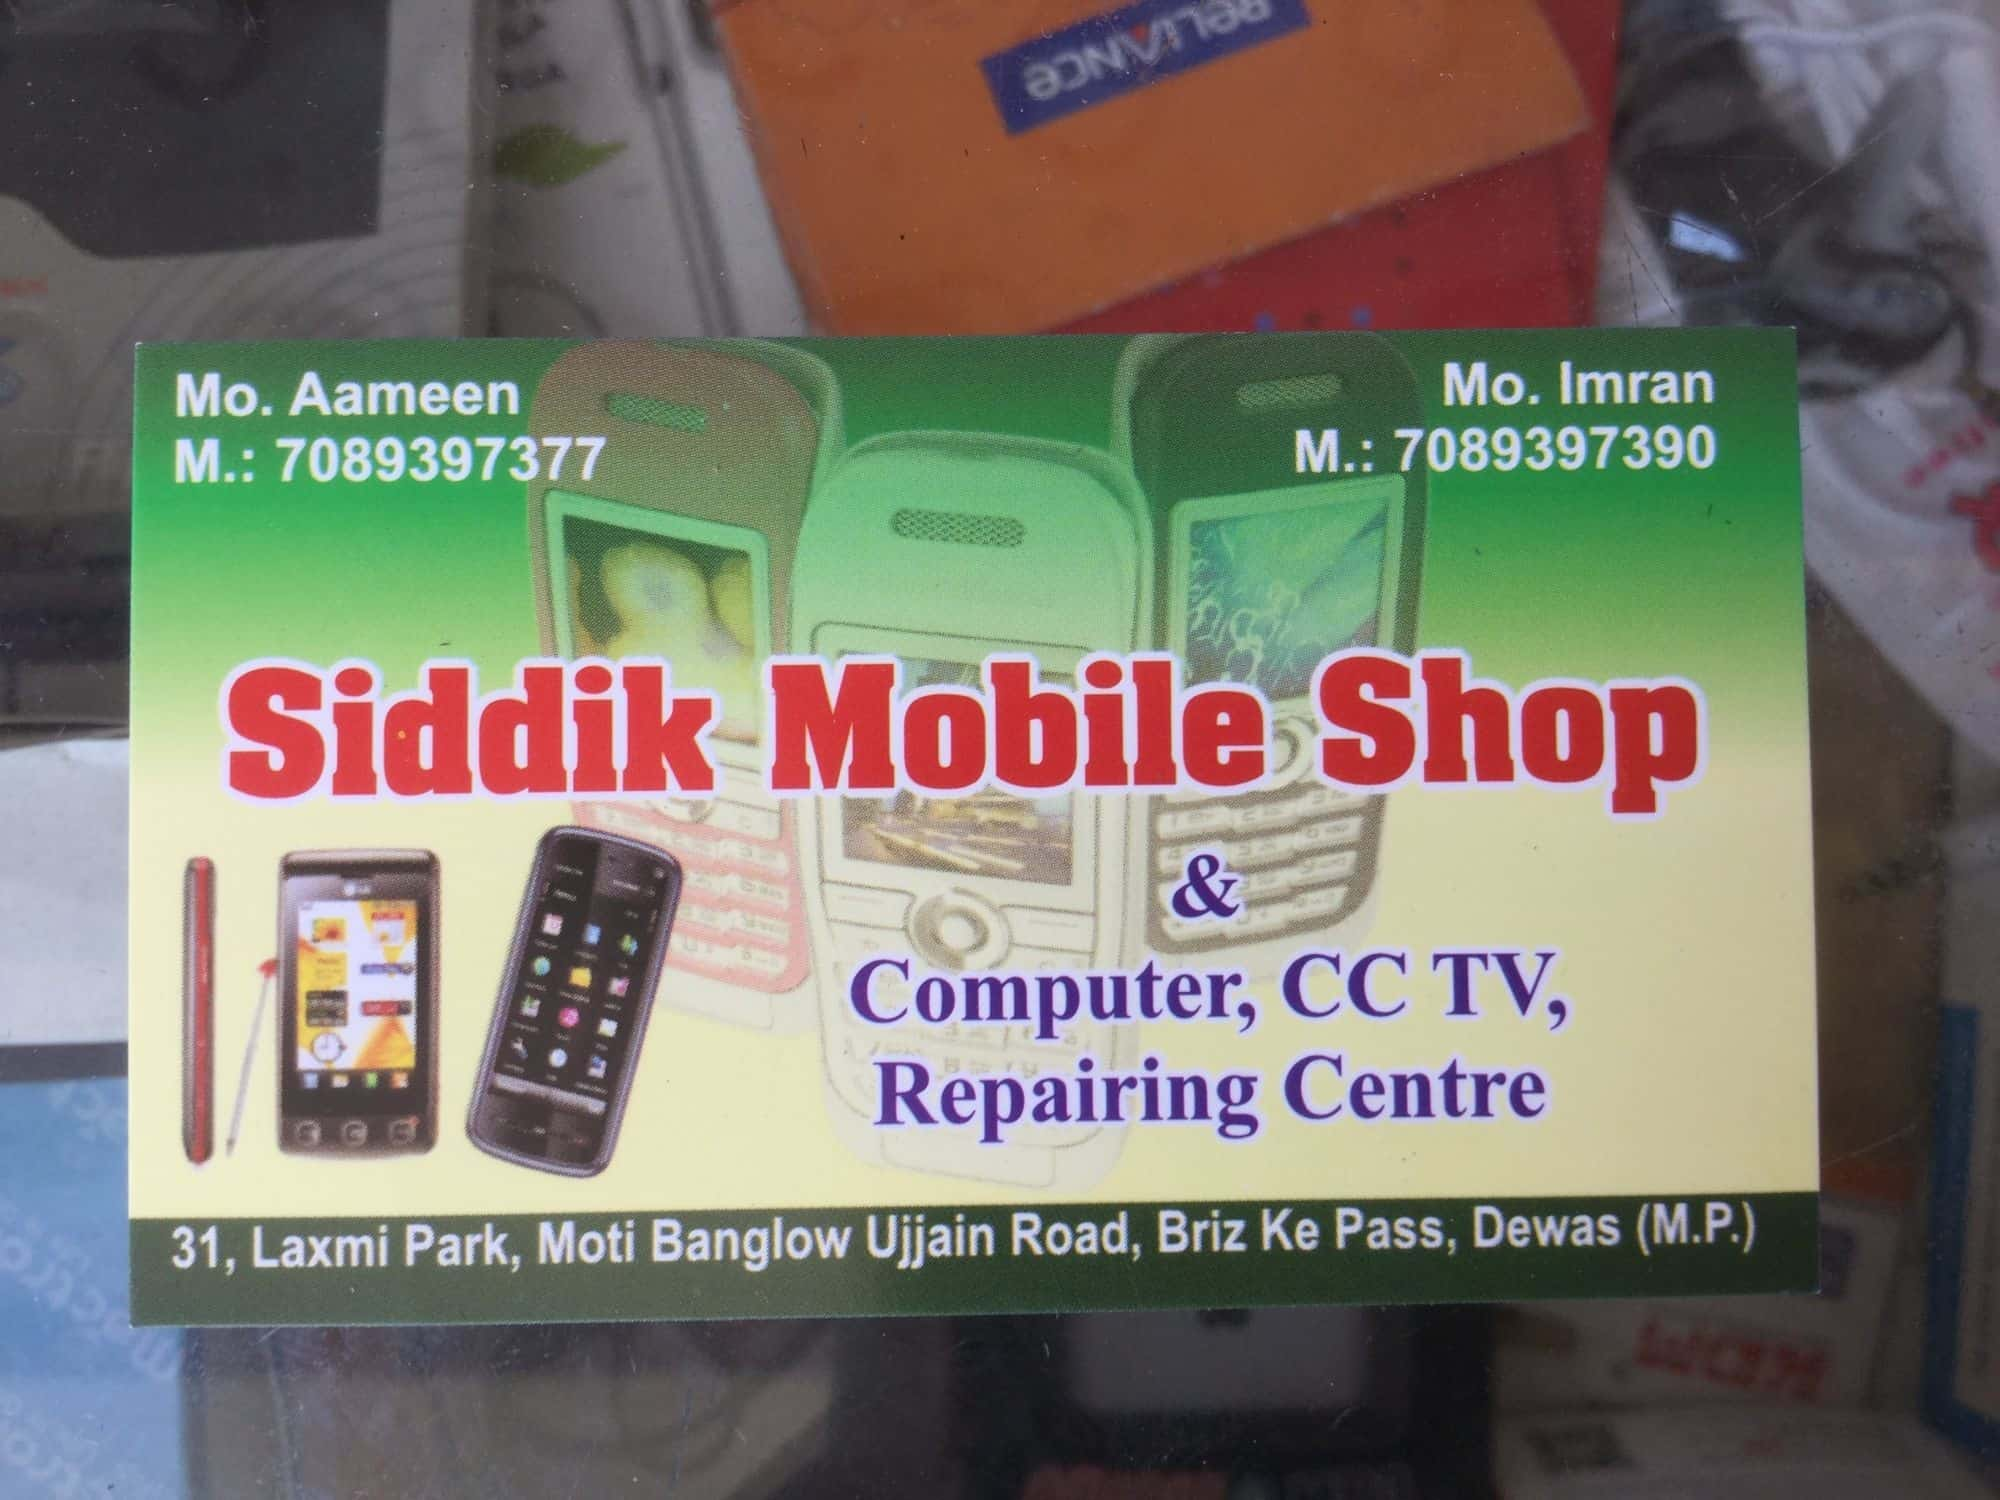 Siddik Mobile Shop Photos Dewas Pictures Images Gallery Justdial